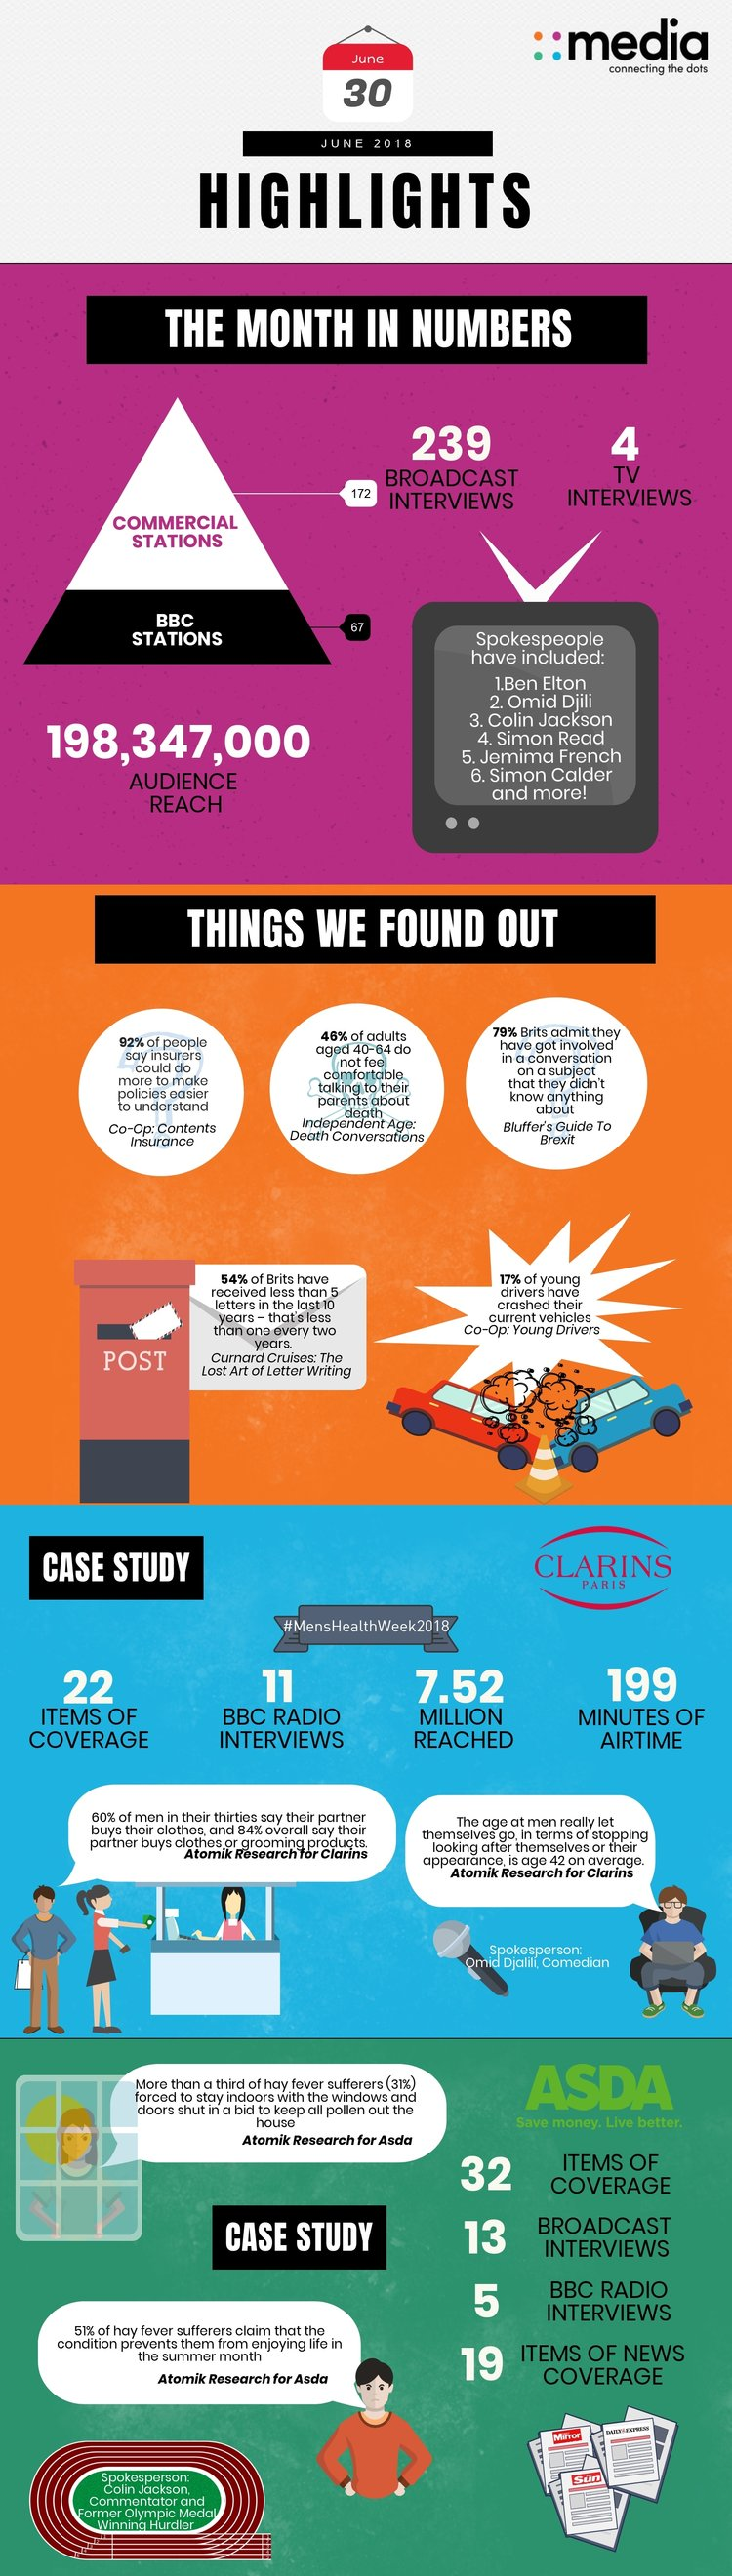 Infographic: June Highlights at 4media group